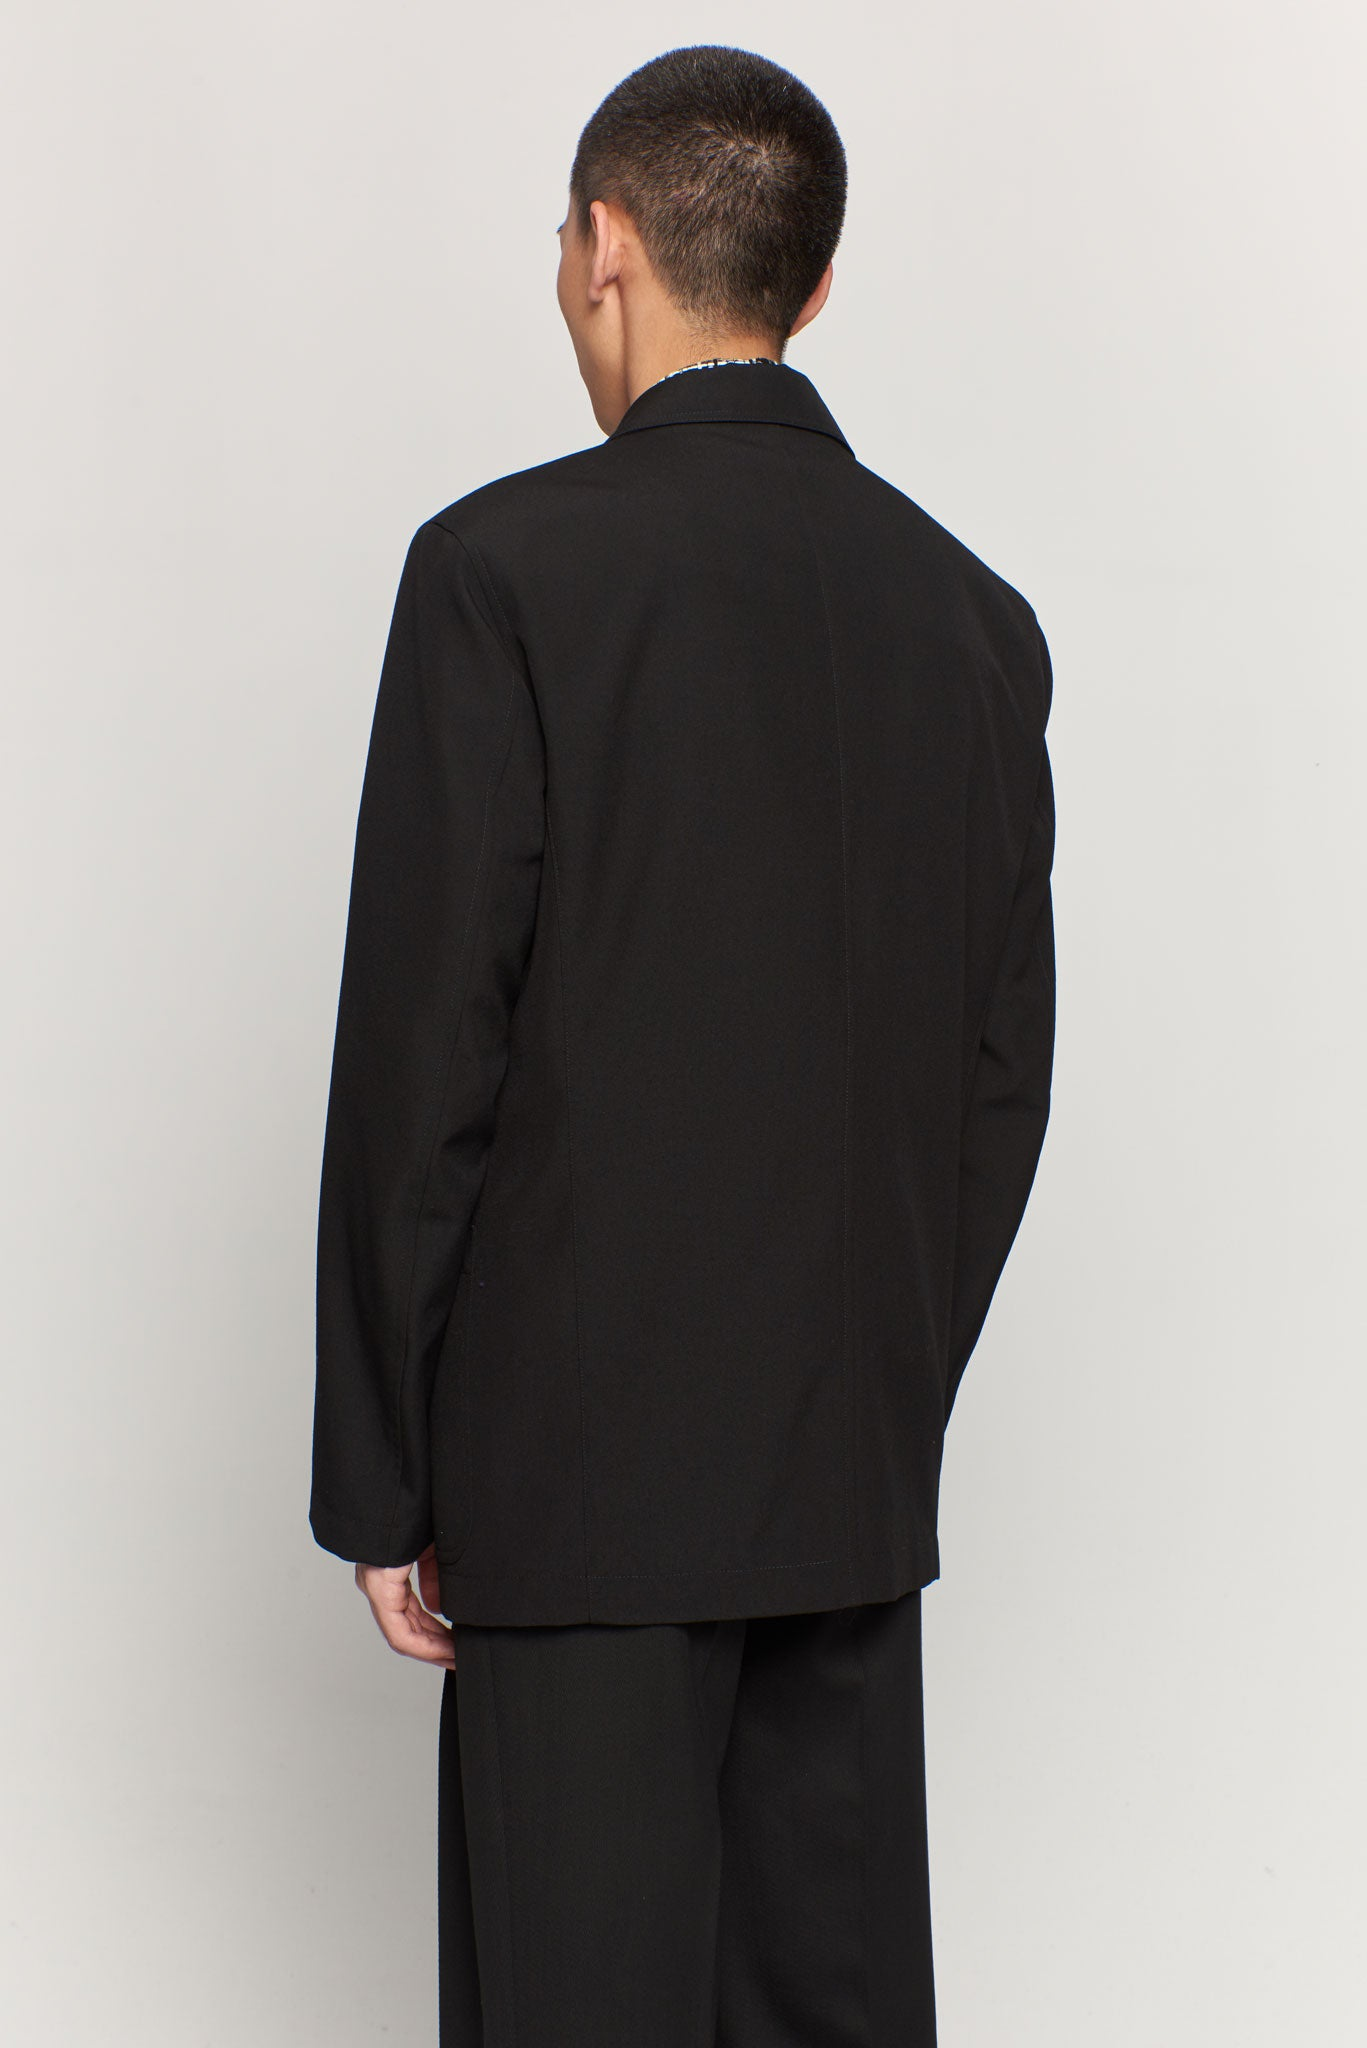 Single Breasted Jacket Black